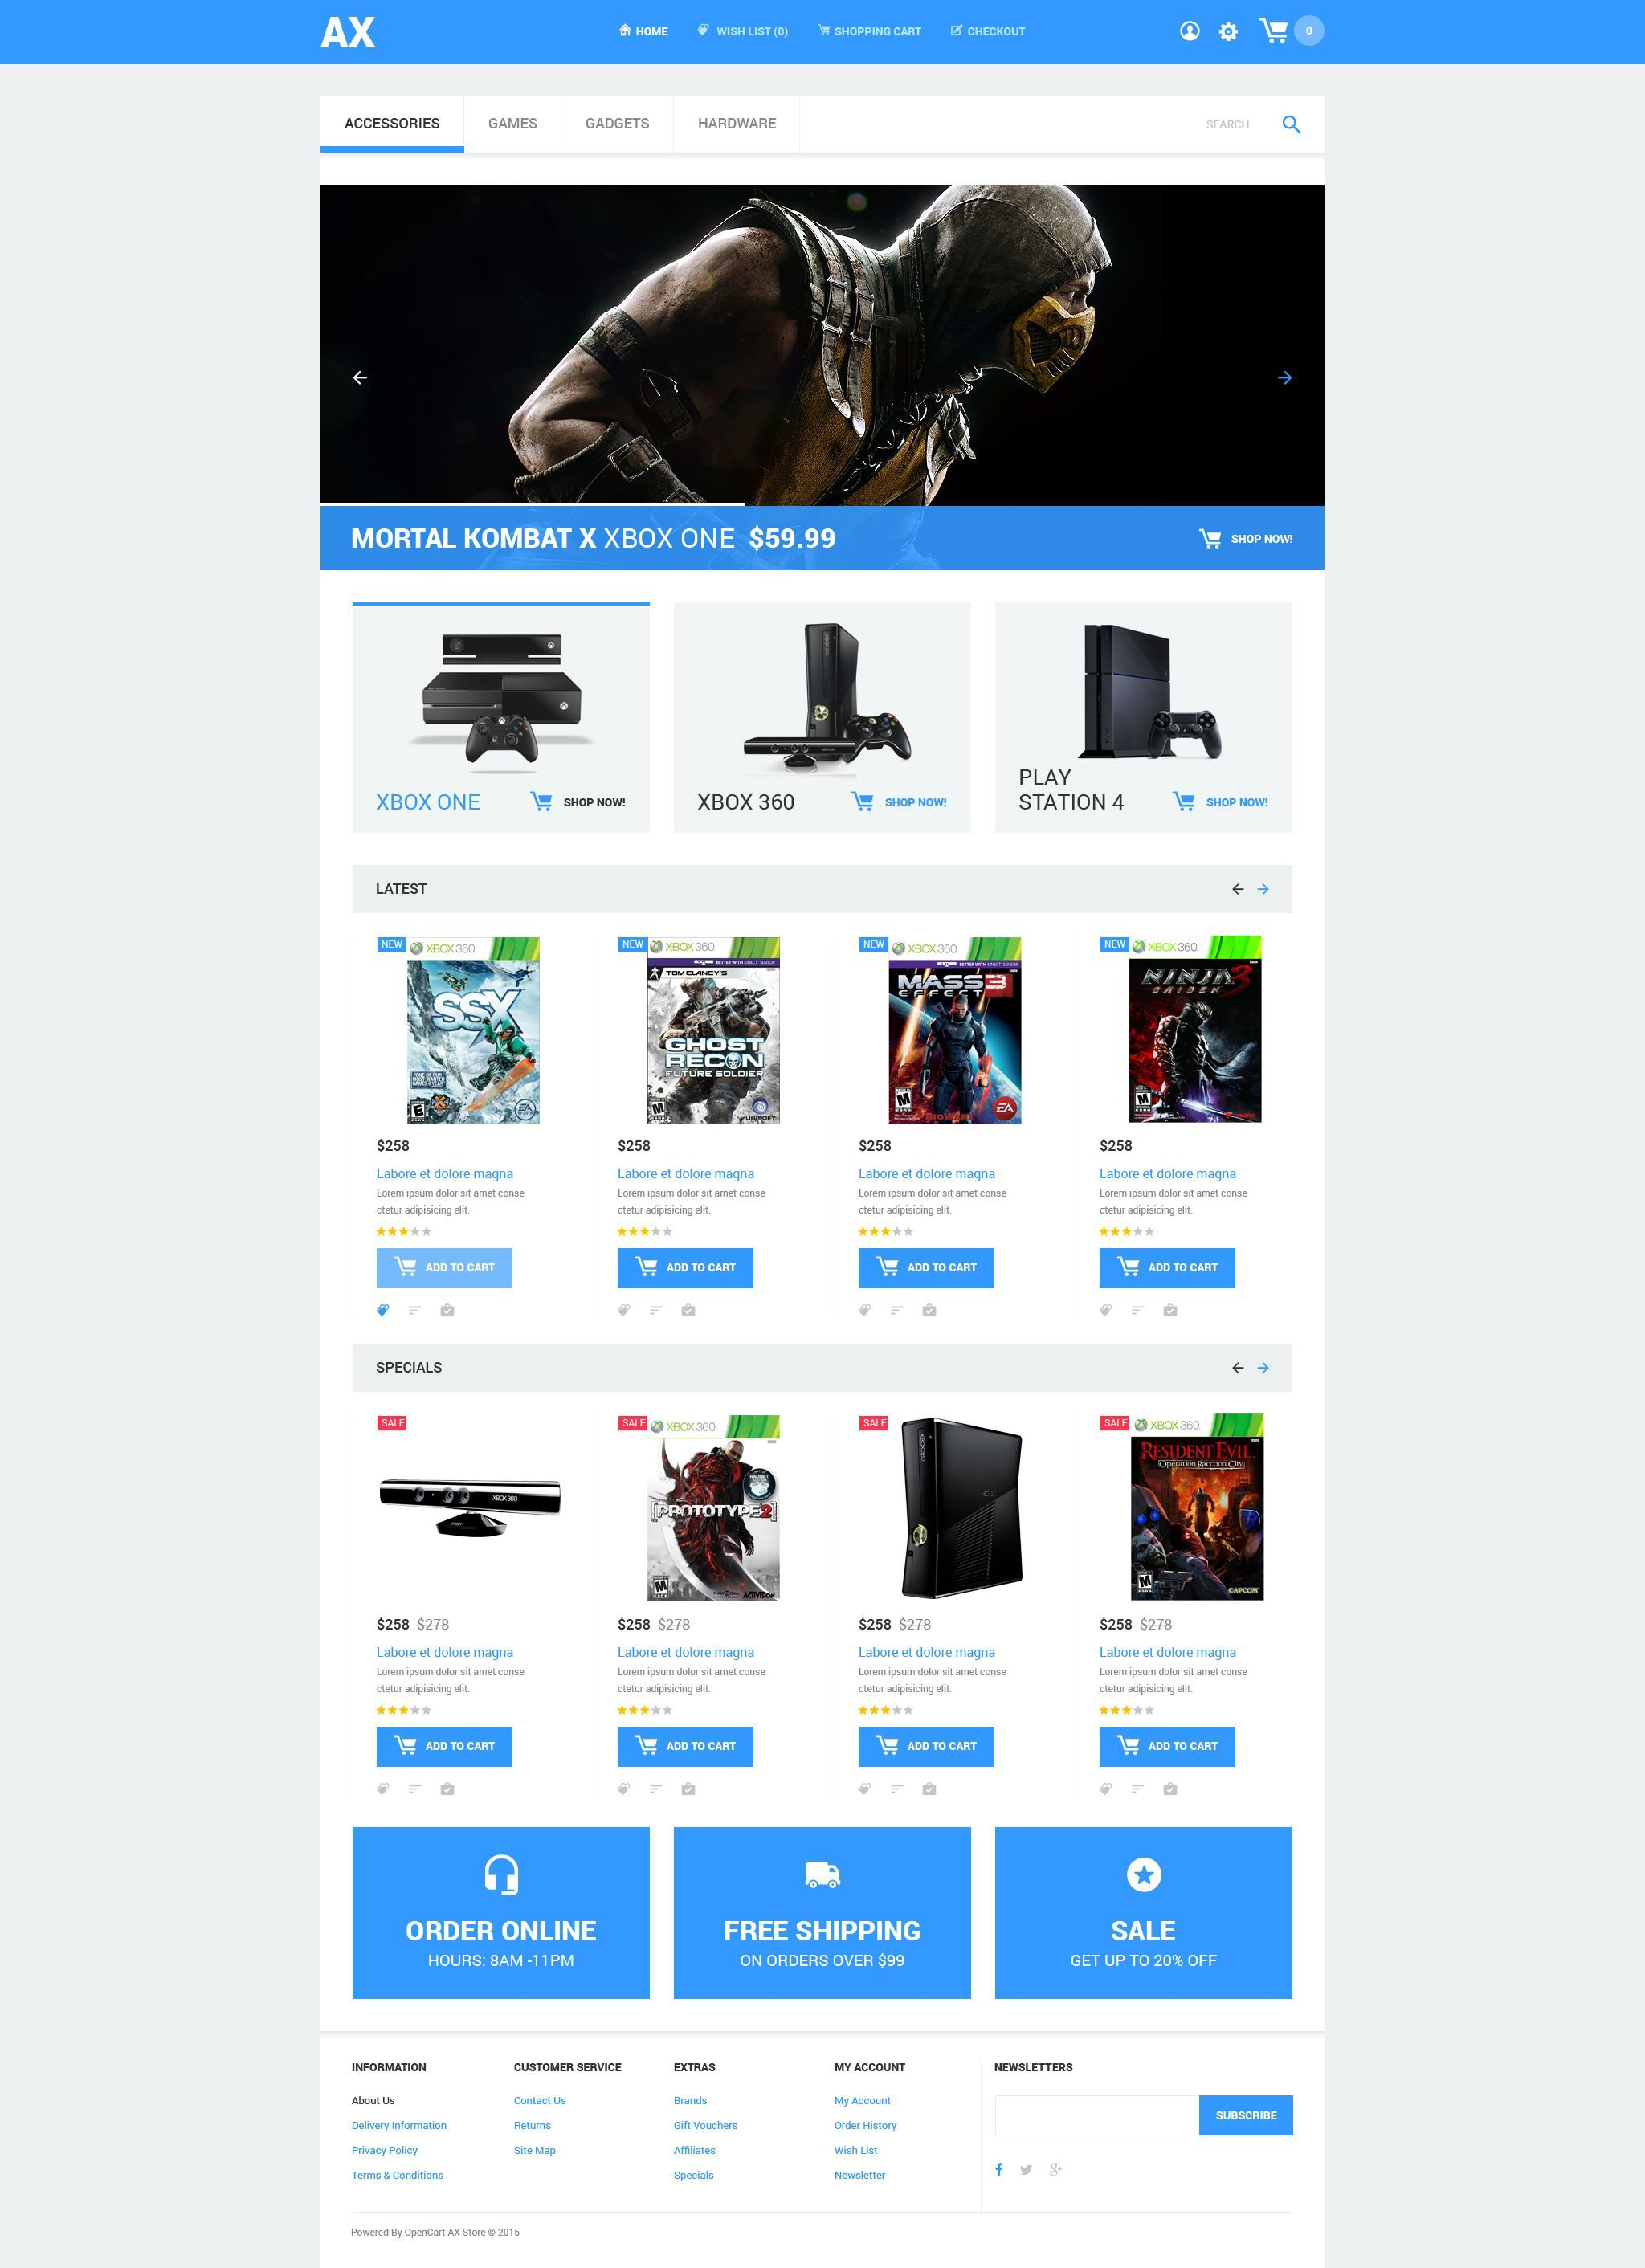 The Ax Games Store Portal OpenCart Design 54601, one of the best OpenCart templates of its kind (games, most popular), also known as ax games store portal OpenCart template, clan OpenCart template, online actions OpenCart template, adventures OpenCart template, driving OpenCart template, strategy OpenCart template, community OpenCart template, members OpenCart template, rules OpenCart template, strategy OpenCart template, stats OpenCart template, gamers OpenCart template, play OpenCart template, champion OpenCart template, tactics OpenCart template, behavior OpenCart template, equipment OpenCart template, entertainment club OpenCart template, gamer OpenCart template, computer OpenCart template, tournament OpenCart template, pc OpenCart template, action OpenCart template, rpg OpenCart template, 3D graphics OpenCart template, counter-strike OpenCart template, webmaster and related with ax games store portal, clan, online actions, adventures, driving, strategy, community, members, rules, strategy, stats, gamers, play, champion, tactics, behavior, equipment, entertainment club, gamer, computer, tournament, pc, action, rpg, 3D graphics, counter-strike, webmaster, etc.